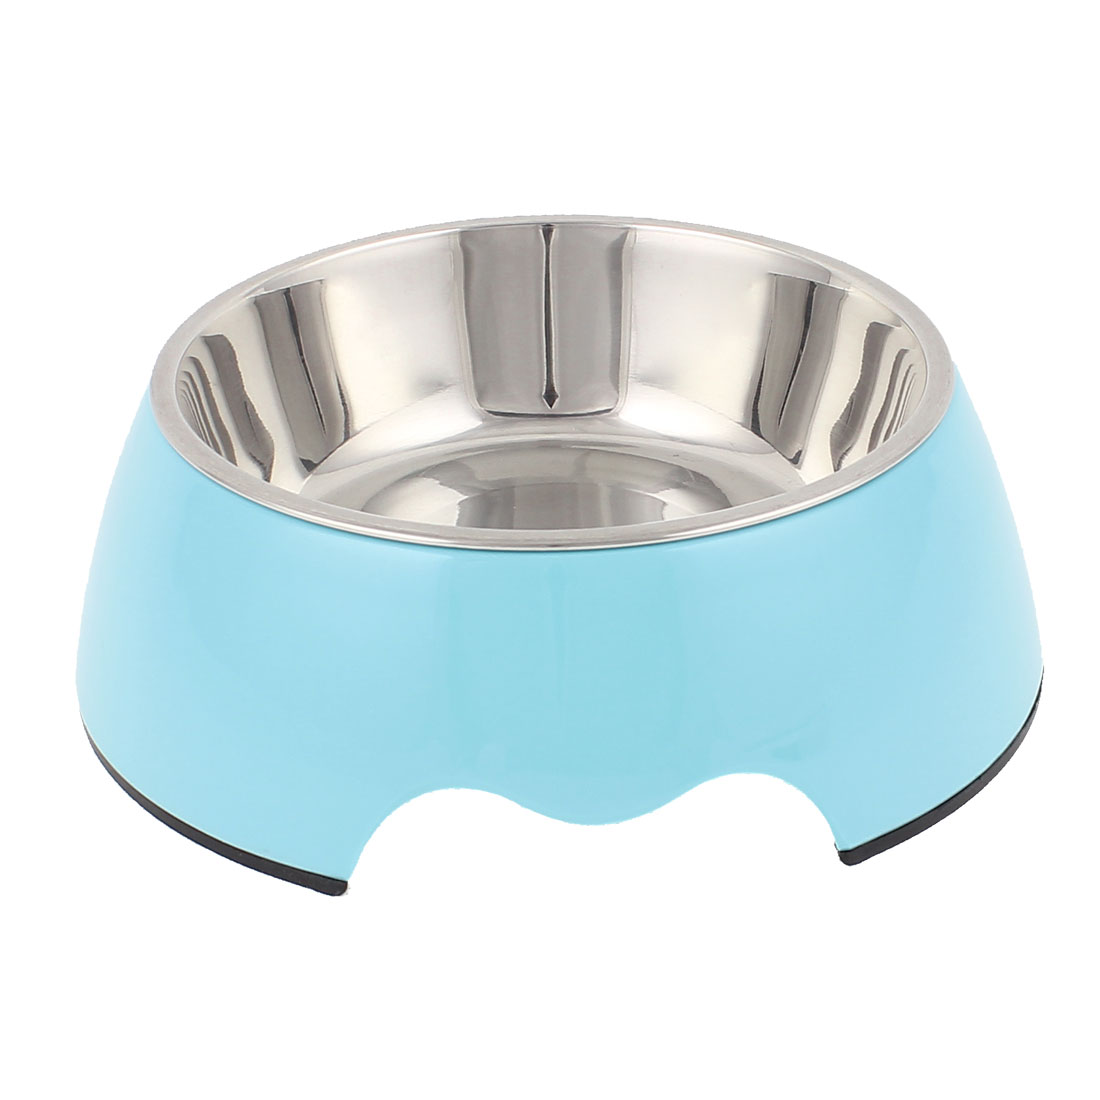 Pet Cat Dog Puppy Stainless Steel Dish Food Water Feeding Feeder Bowl Blue